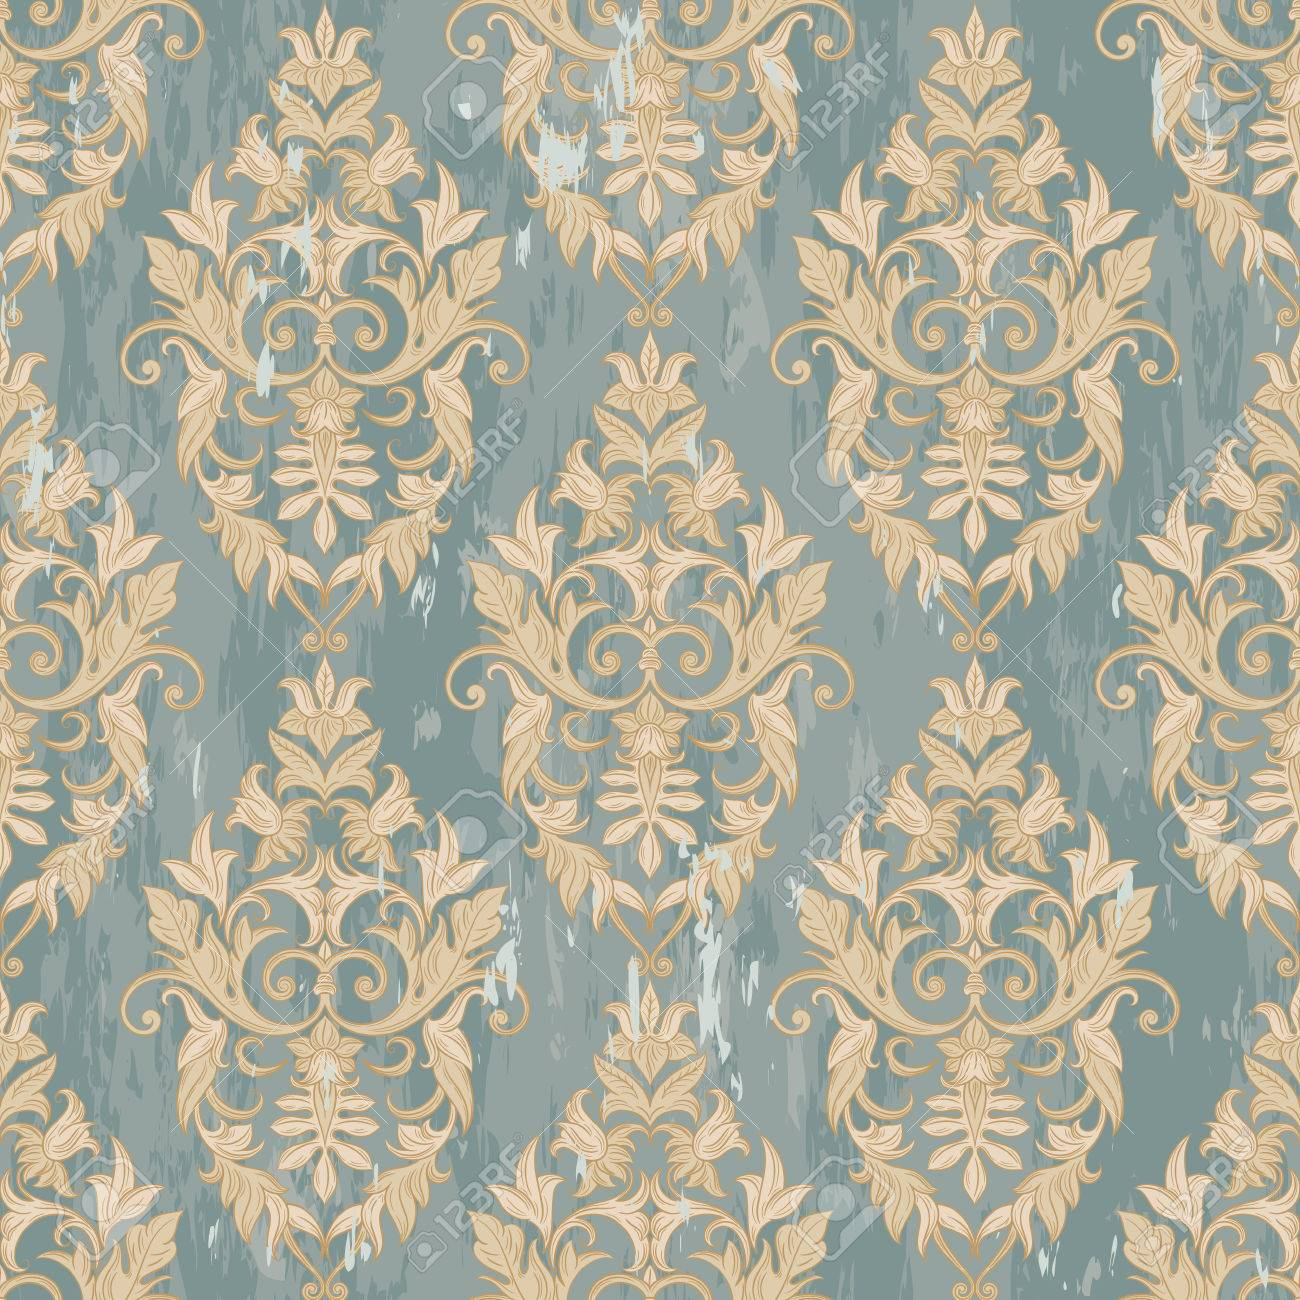 Seamless Decorative Damask Floral Pattern Royal Wallpaper Background Best For Invitations Or Announcements